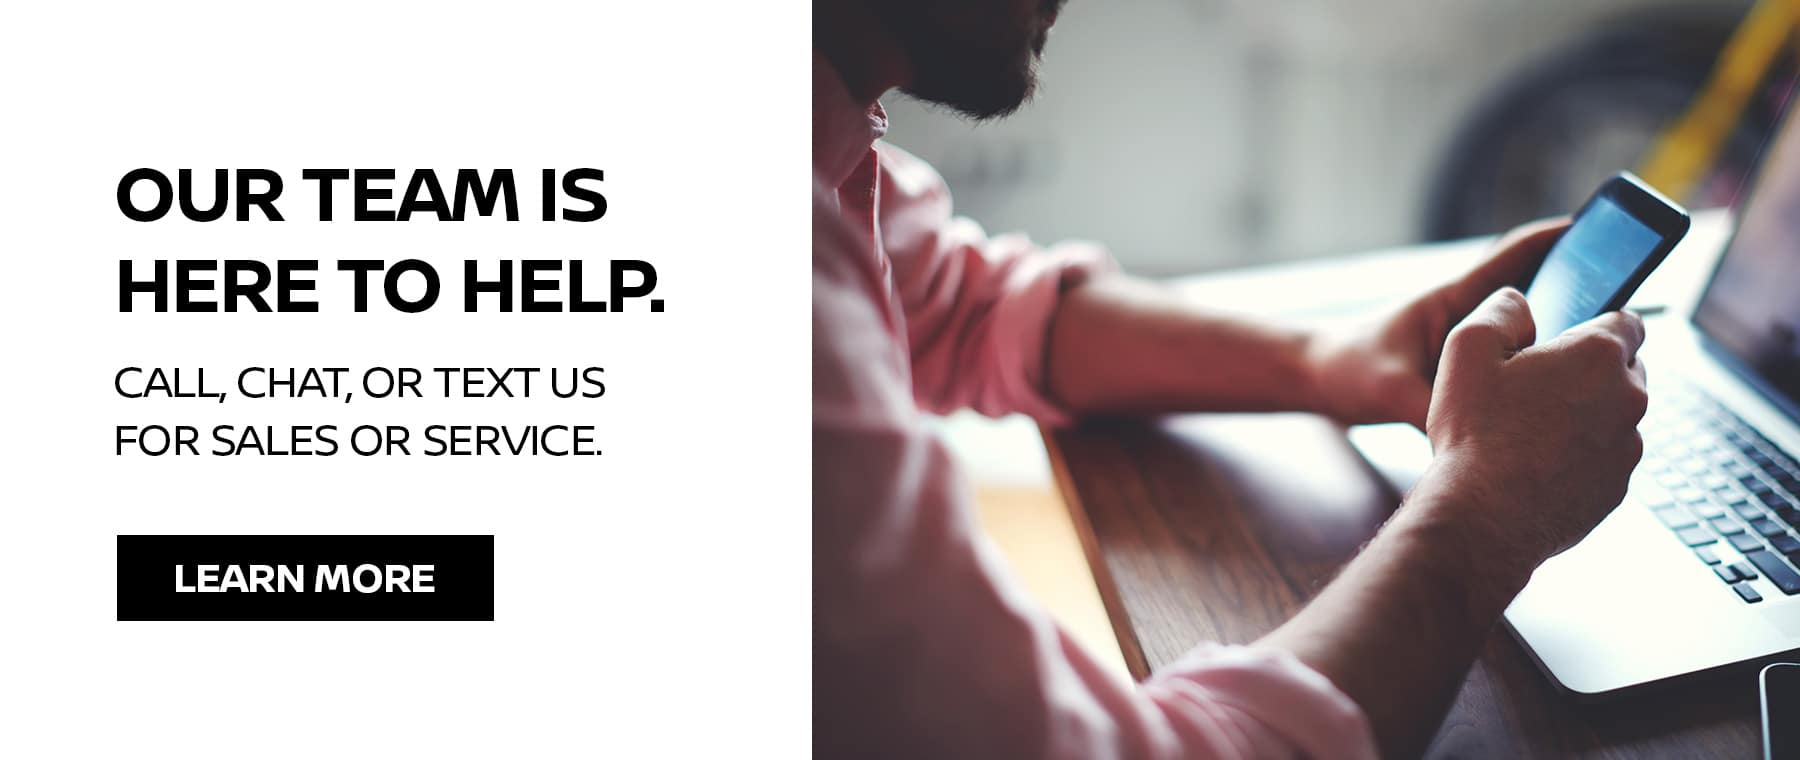 Our team is here to help. Call, text, or chat us